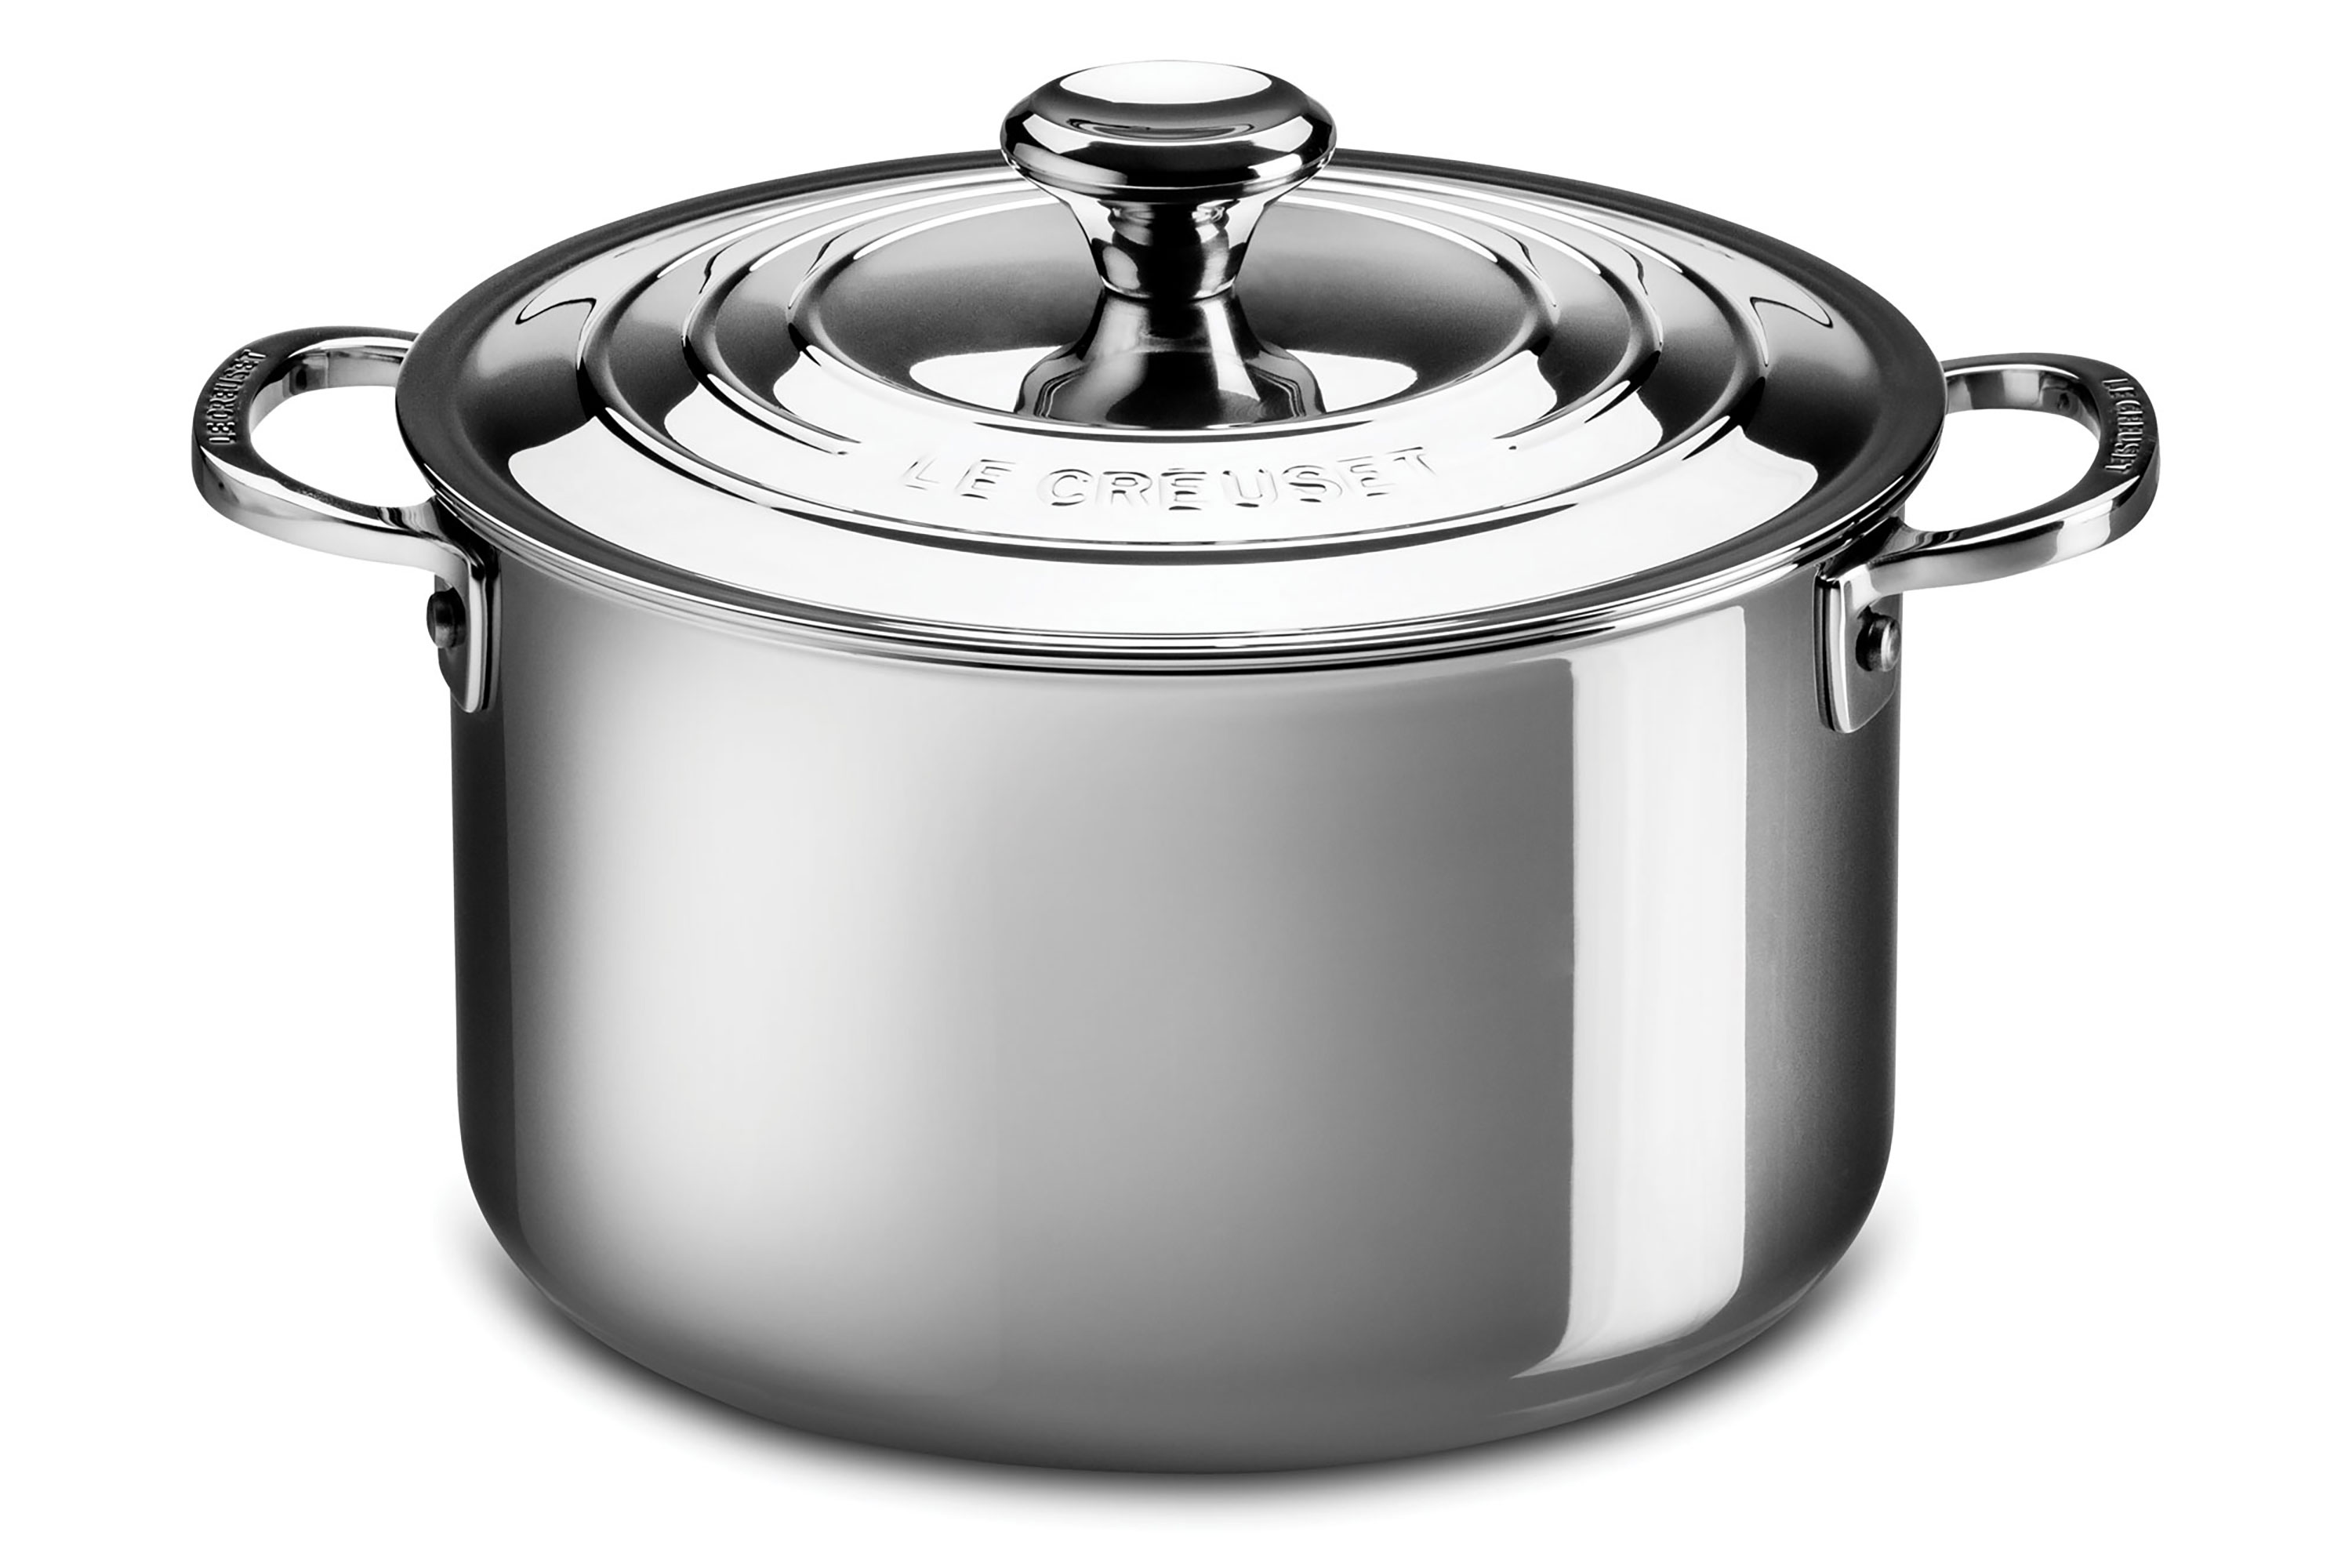 Le Creuset Stainless Steel Stockpot 11 Quart Cutlery